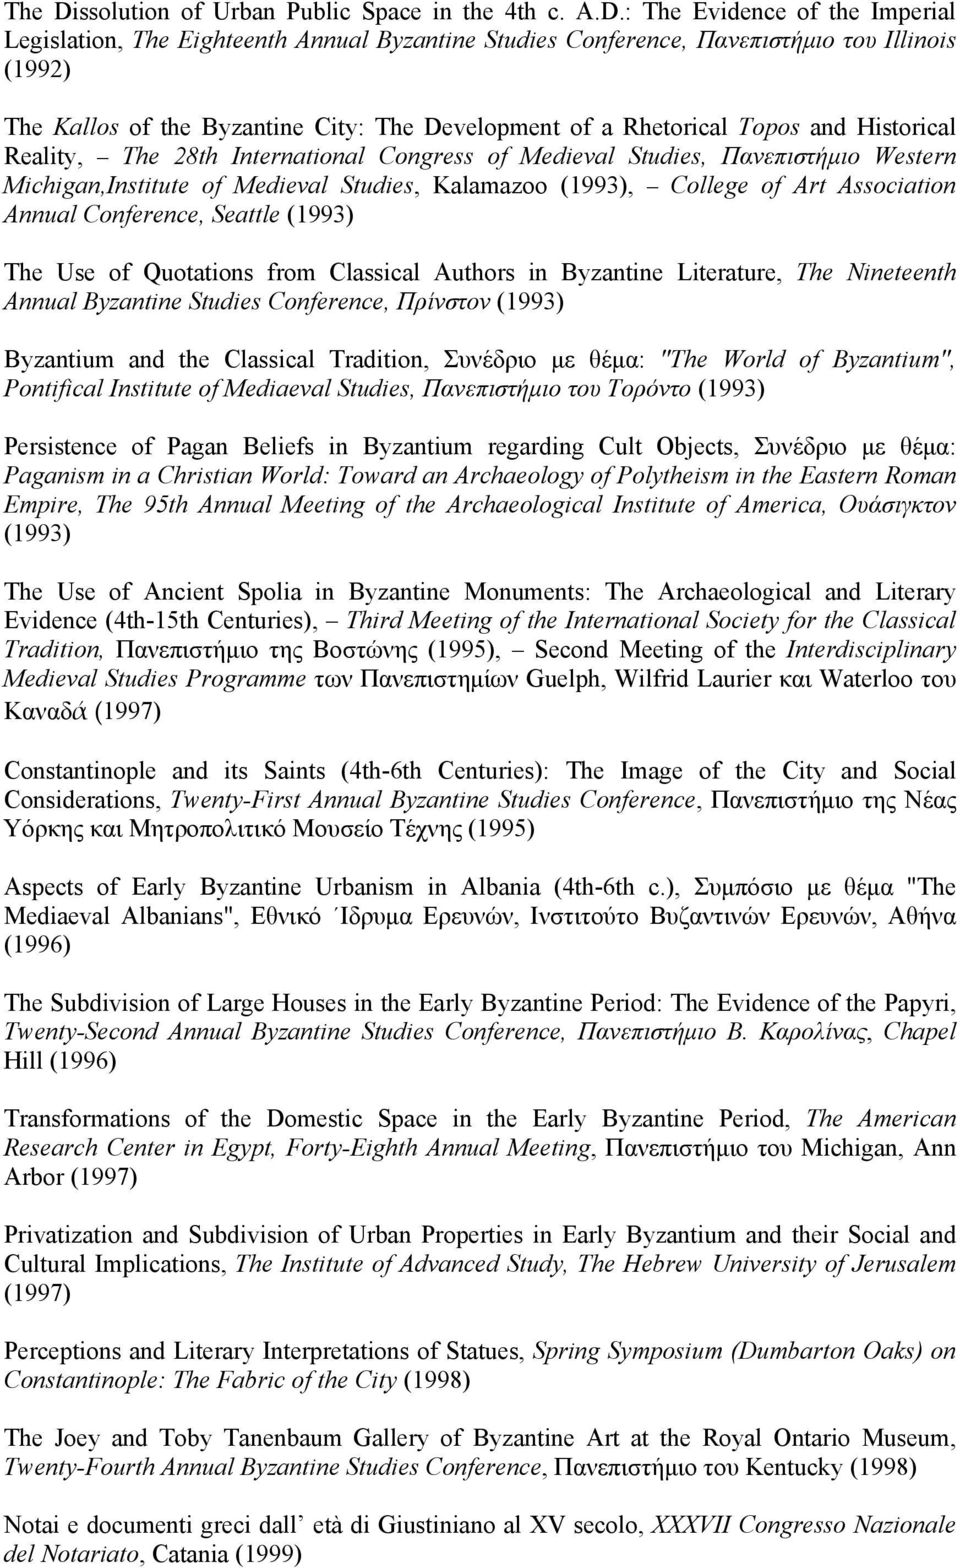 : The Evidence of the Imperial Legislation, The Eighteenth Annual Byzantine Studies Conference, Παvεπιστήμιo τoυ Illinois (1992) The Kallos of the Byzantine City: The Development of a Rhetorical